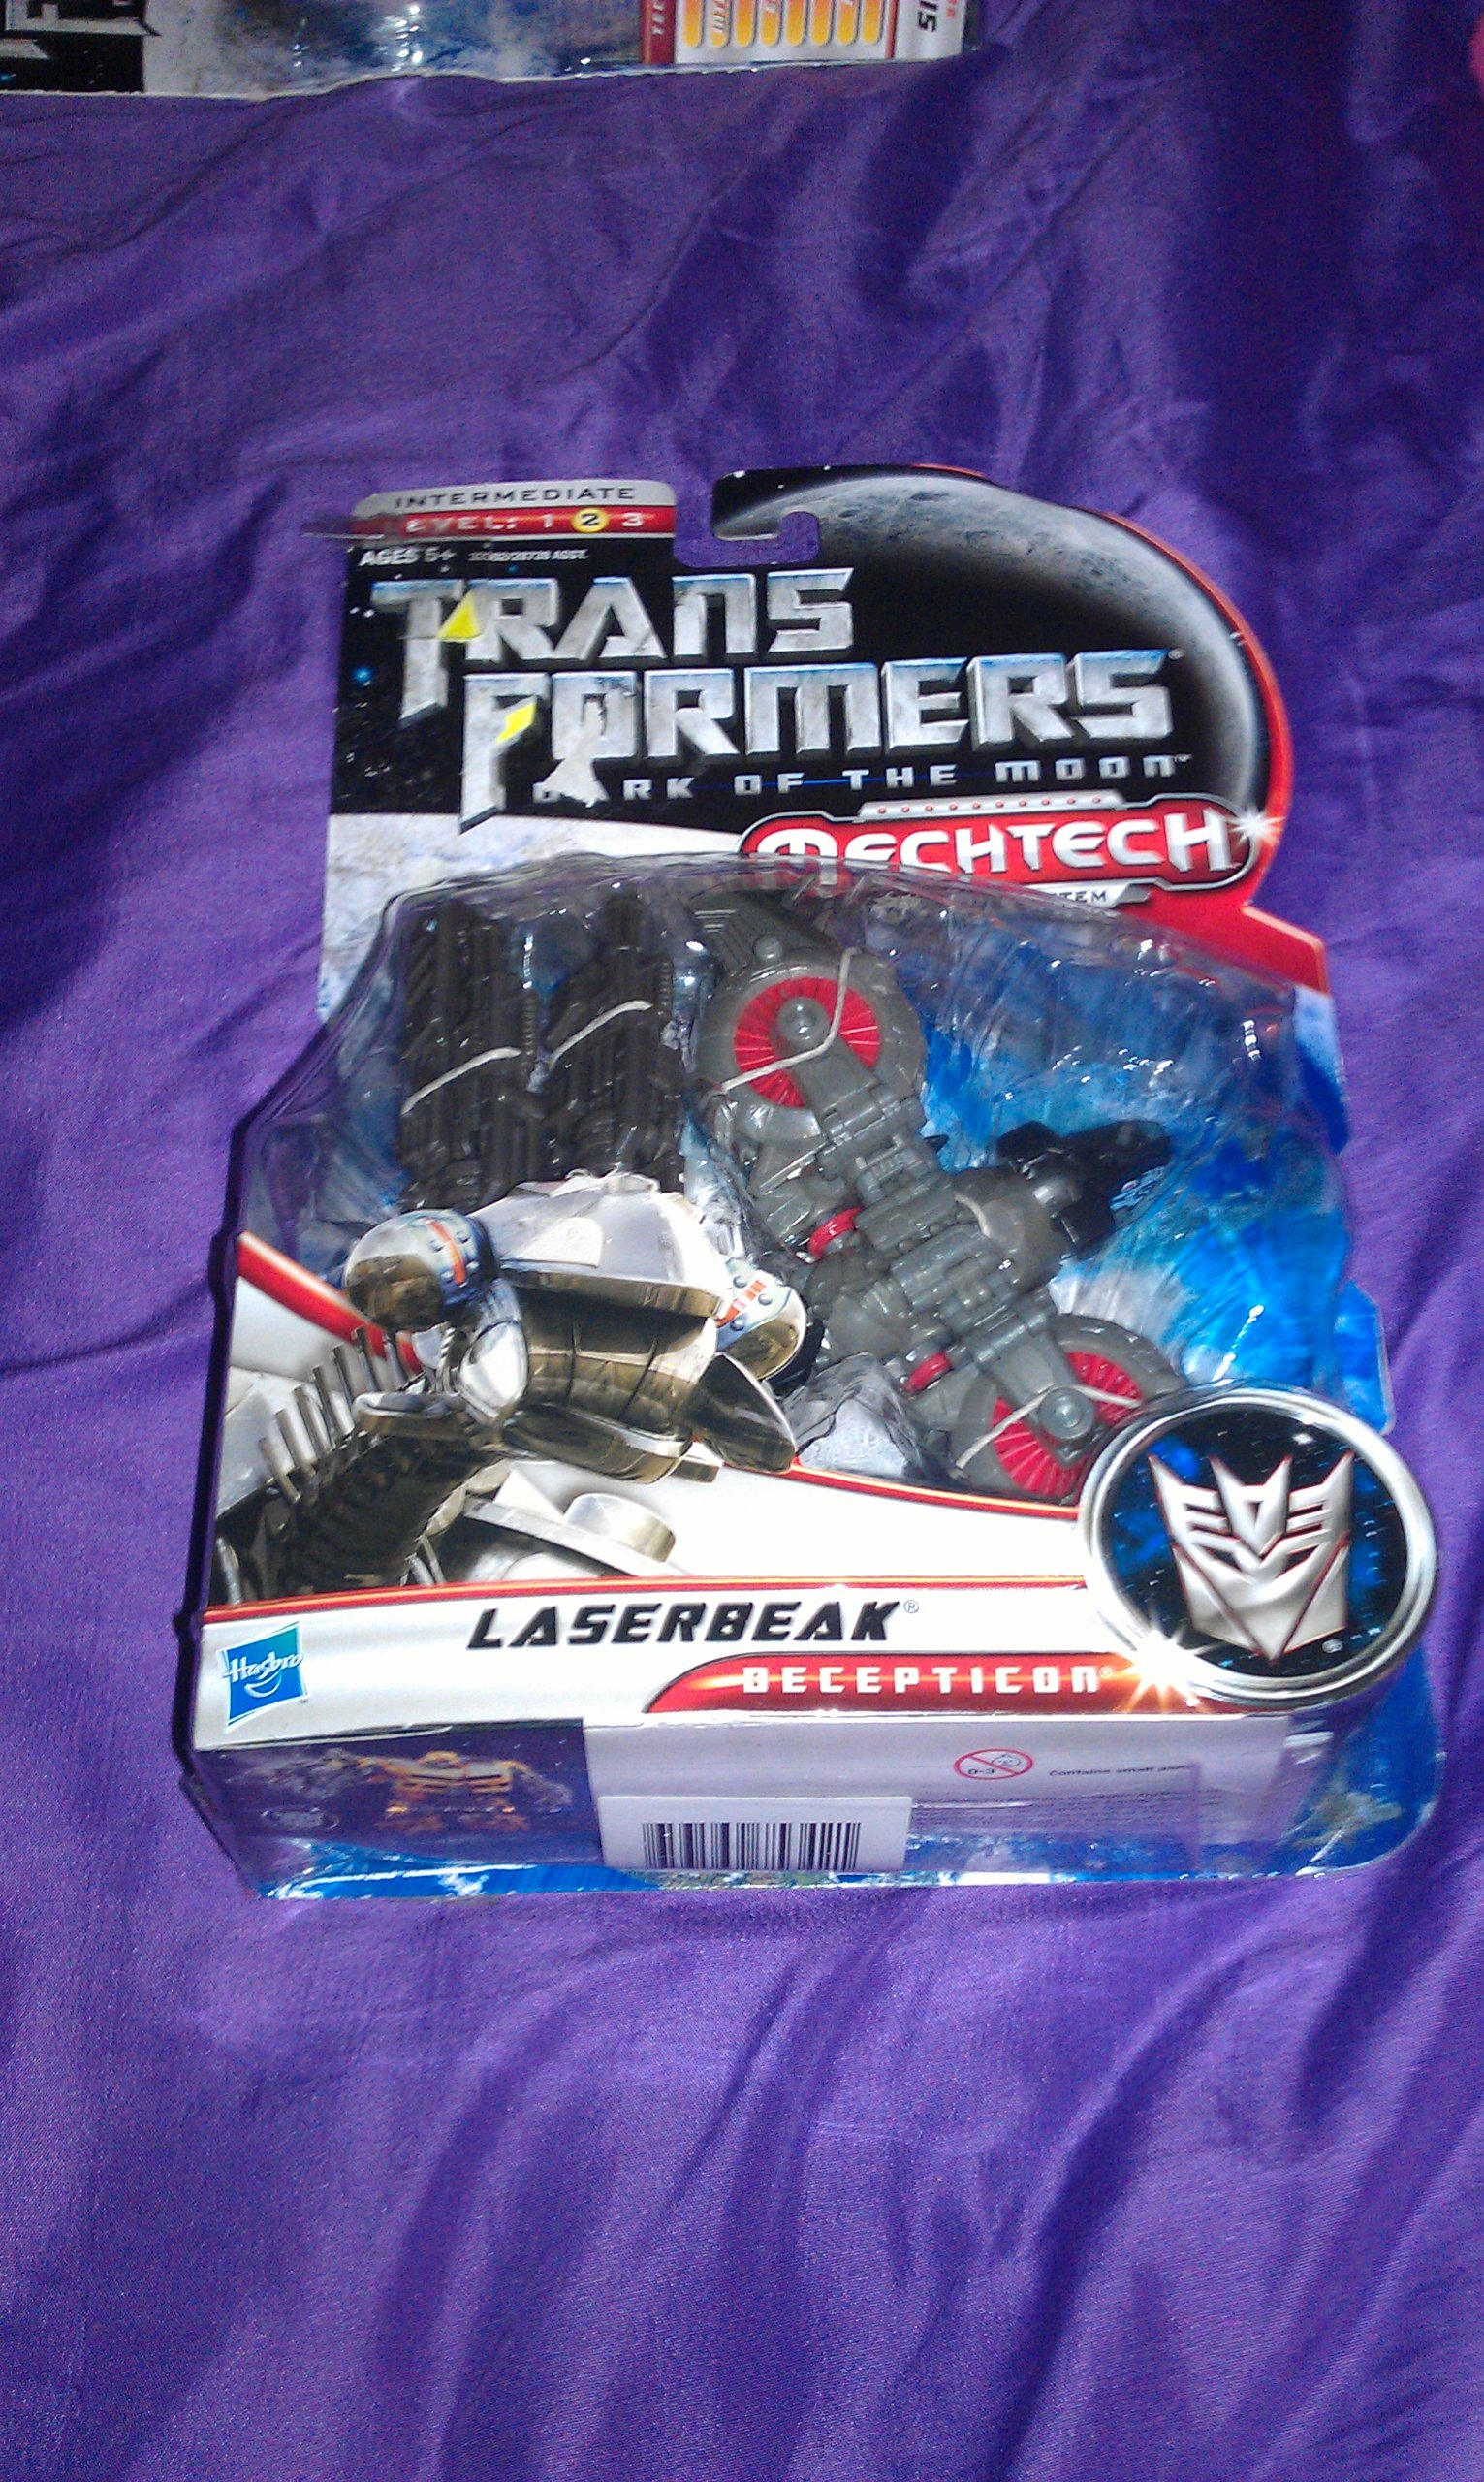 """Hasbro Year 2010 Transformers Movie Series 3 """"Dark of the Moon"""" Deluxe Class 6 Inch Long Robot Action Figure with MechTech Weapon System - Decepticon LASERBEAK with Convertible Dual-Barrel Cybertronian Cannon (Vehicle Mode: Hover Jet)"""